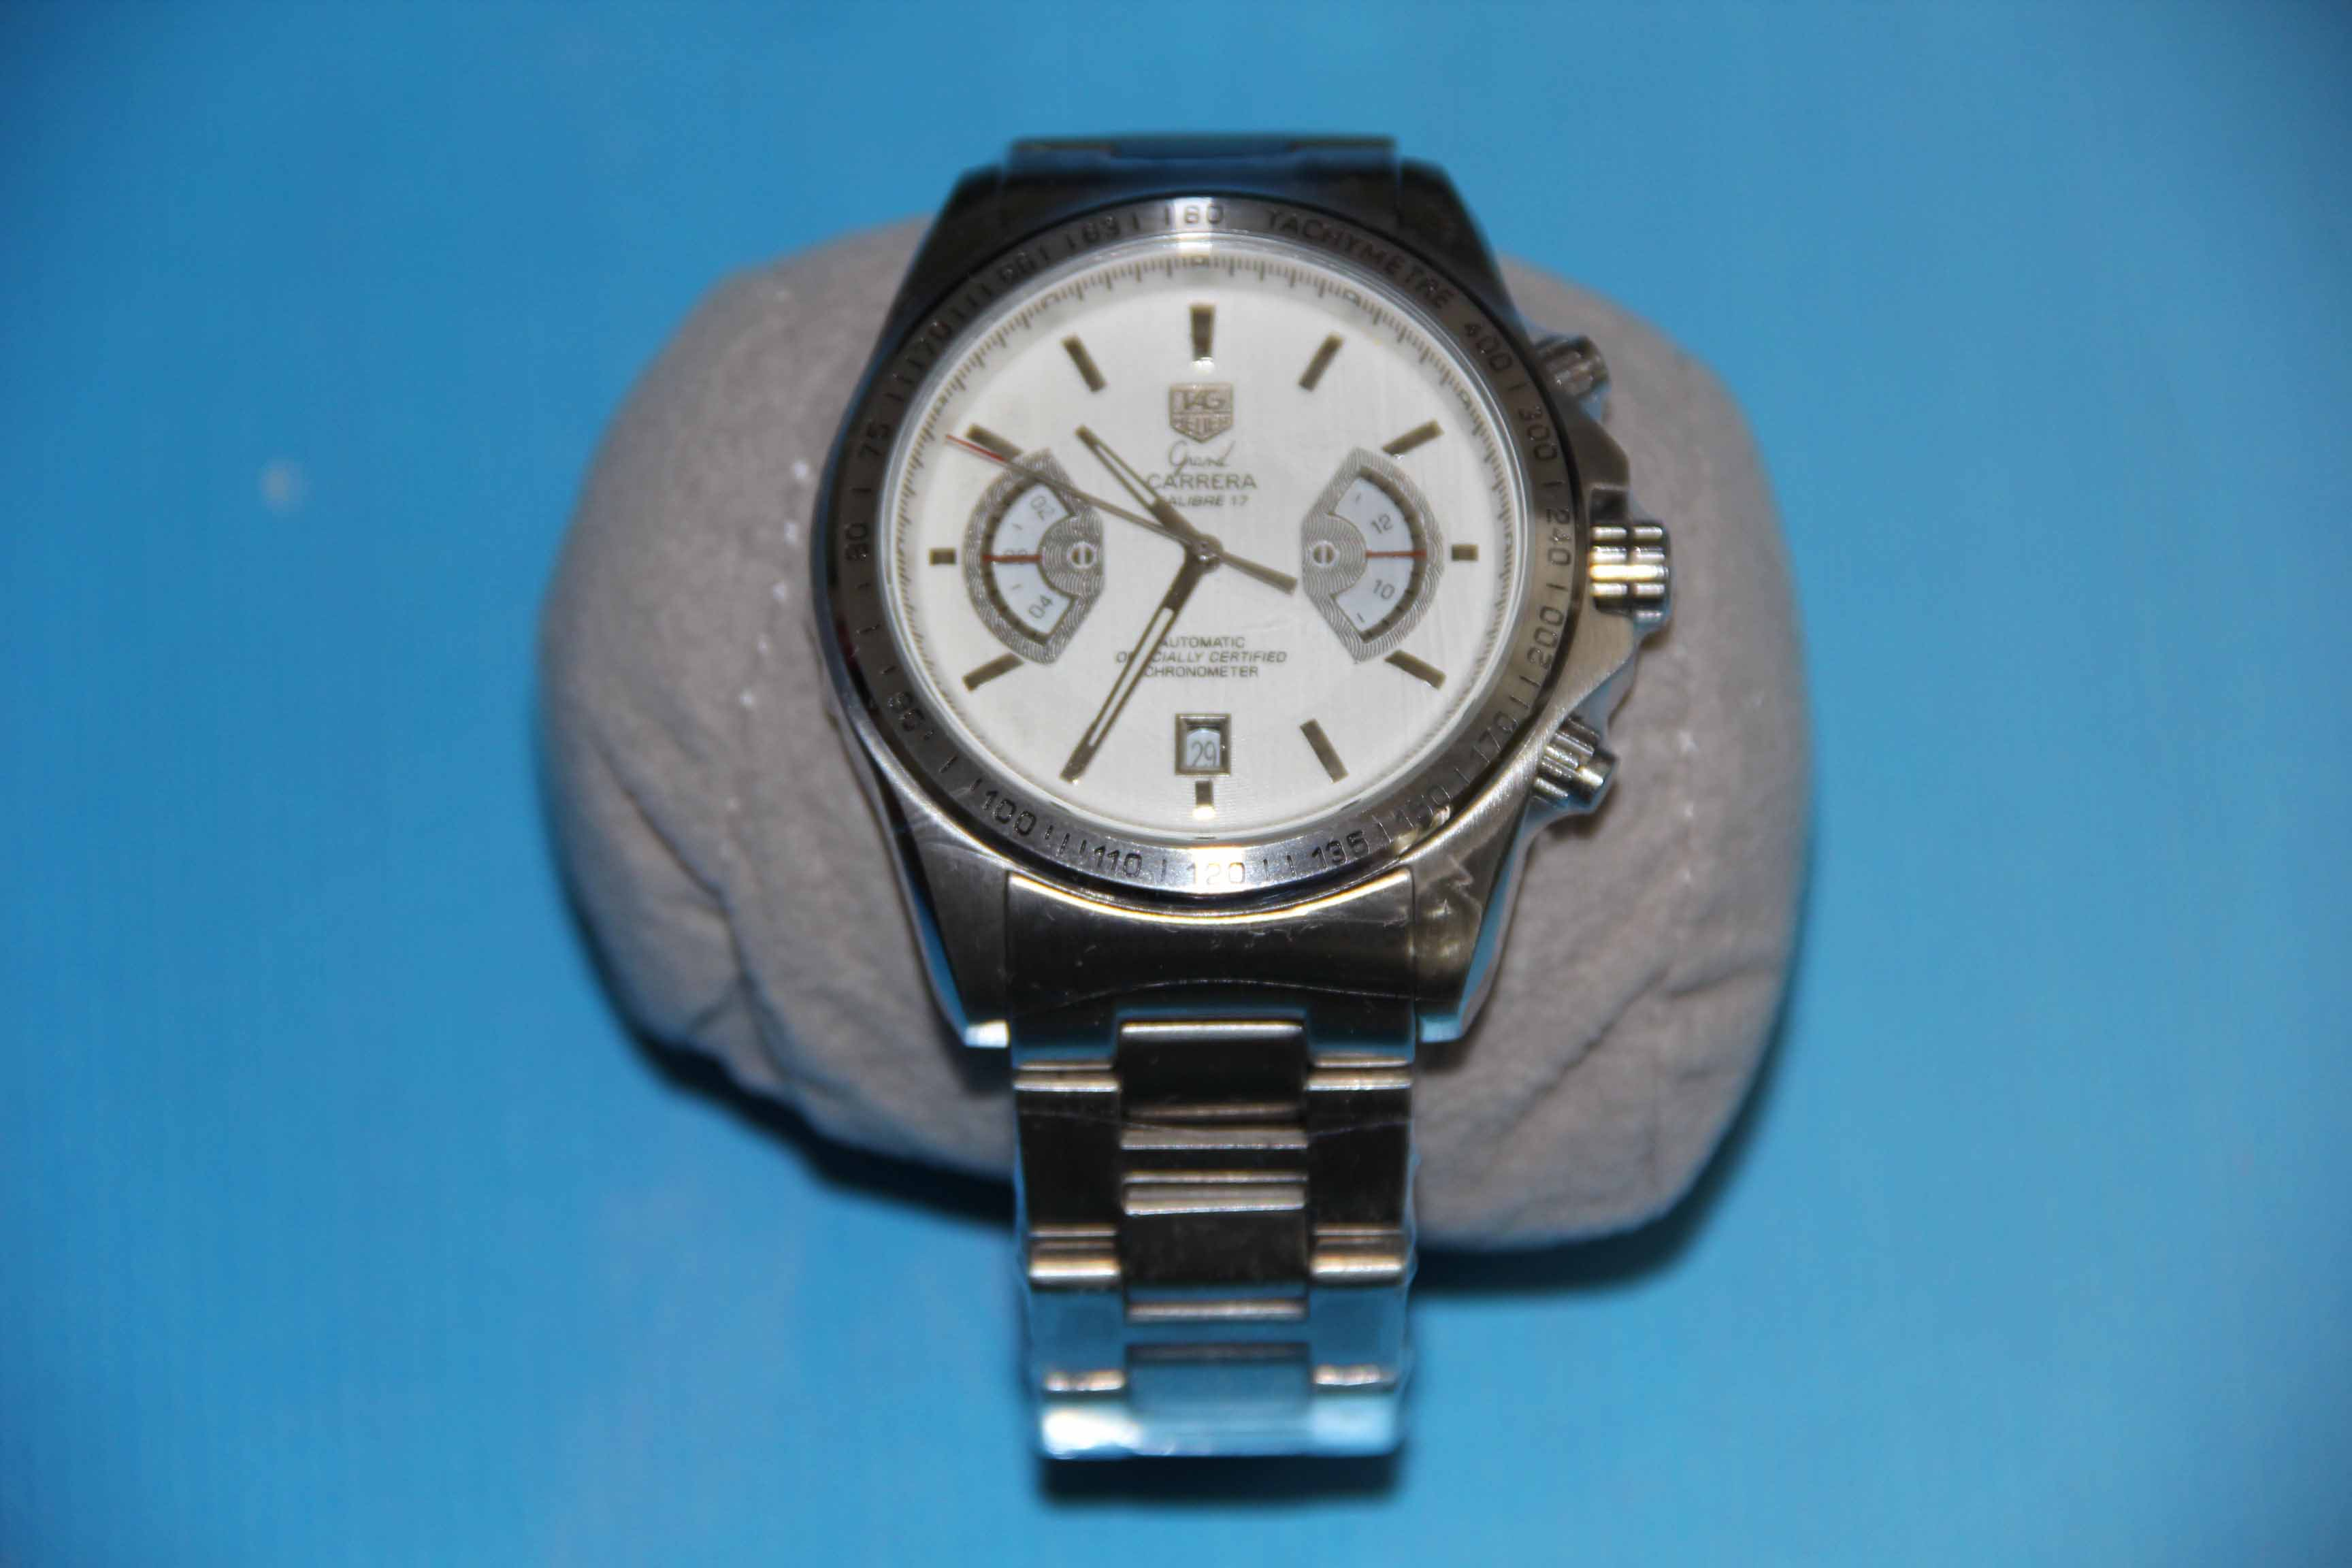 Tag Heuer genuine carera calibre 36 and Monaco watches | ClickBD large image 1